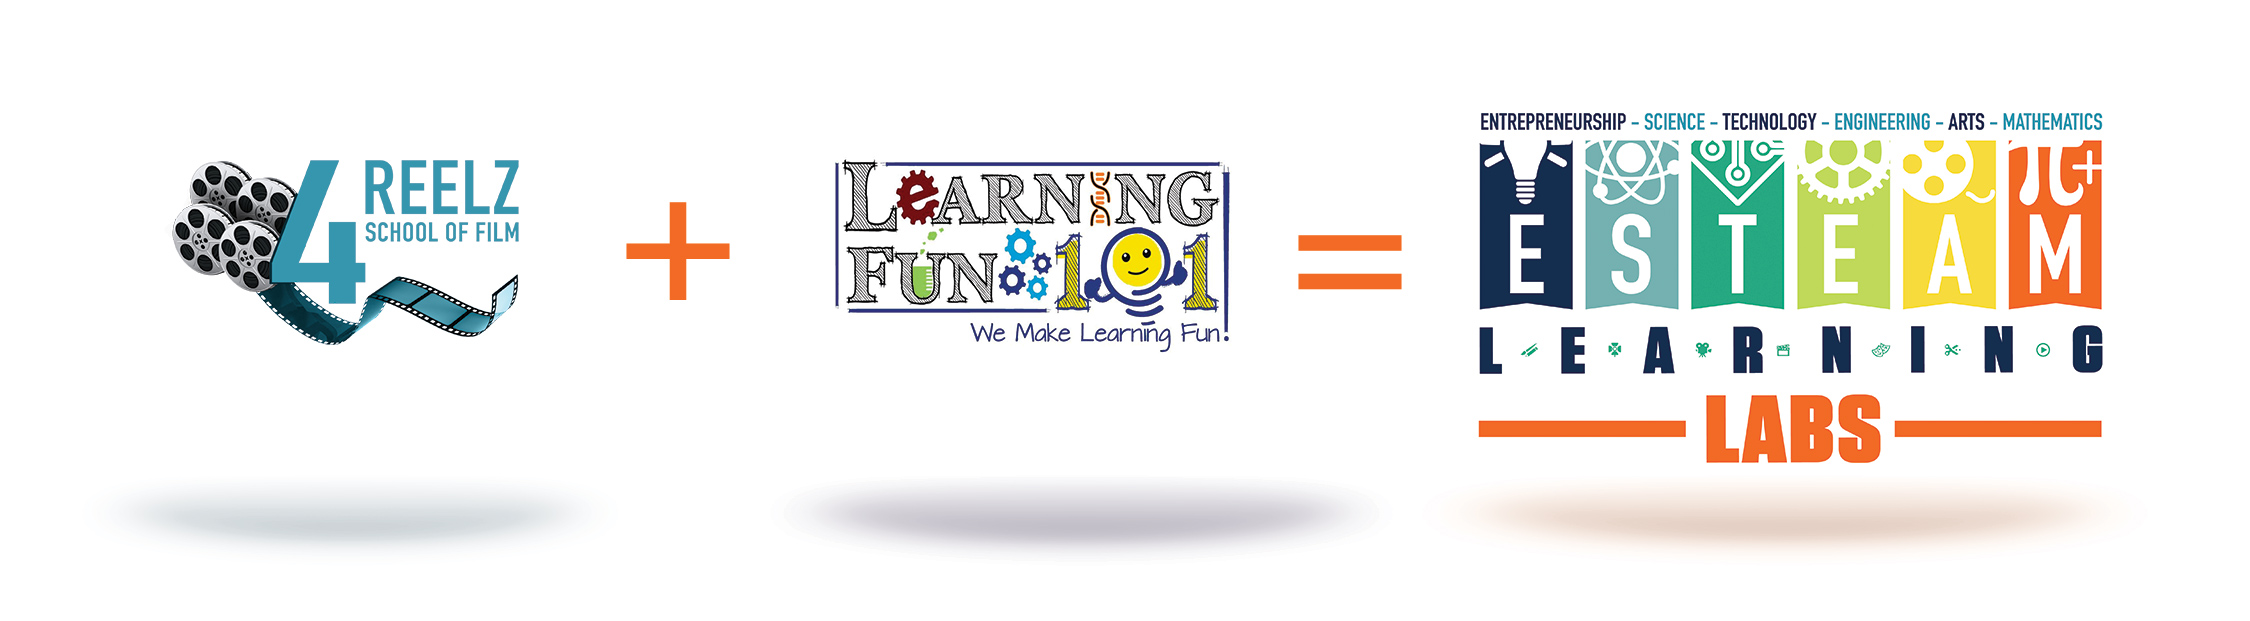 ESTEAM-Learning-Labs_4REELZ-LF101